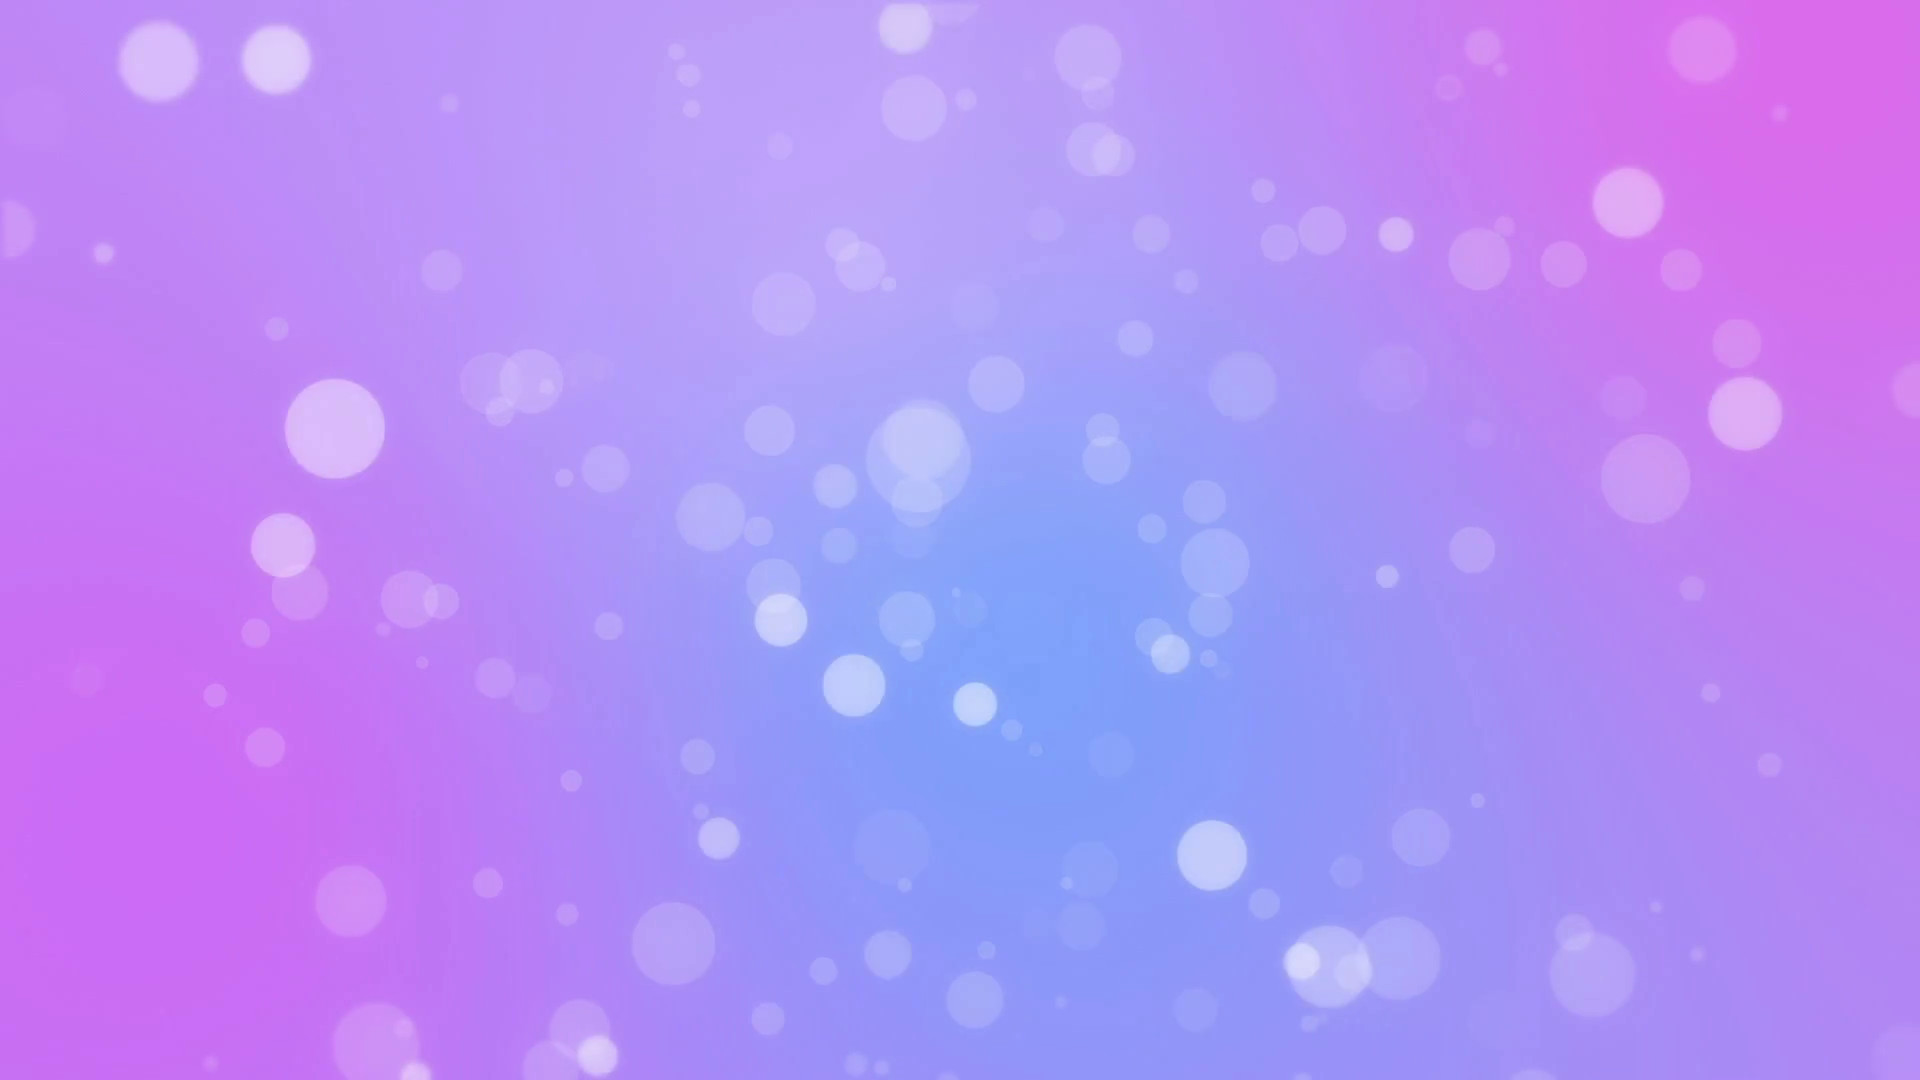 1920x1080 Abstract Christmas holiday background with white bokeh lights flickering on  purple pink blue gradient backdrop Motion Background - VideoBlocks